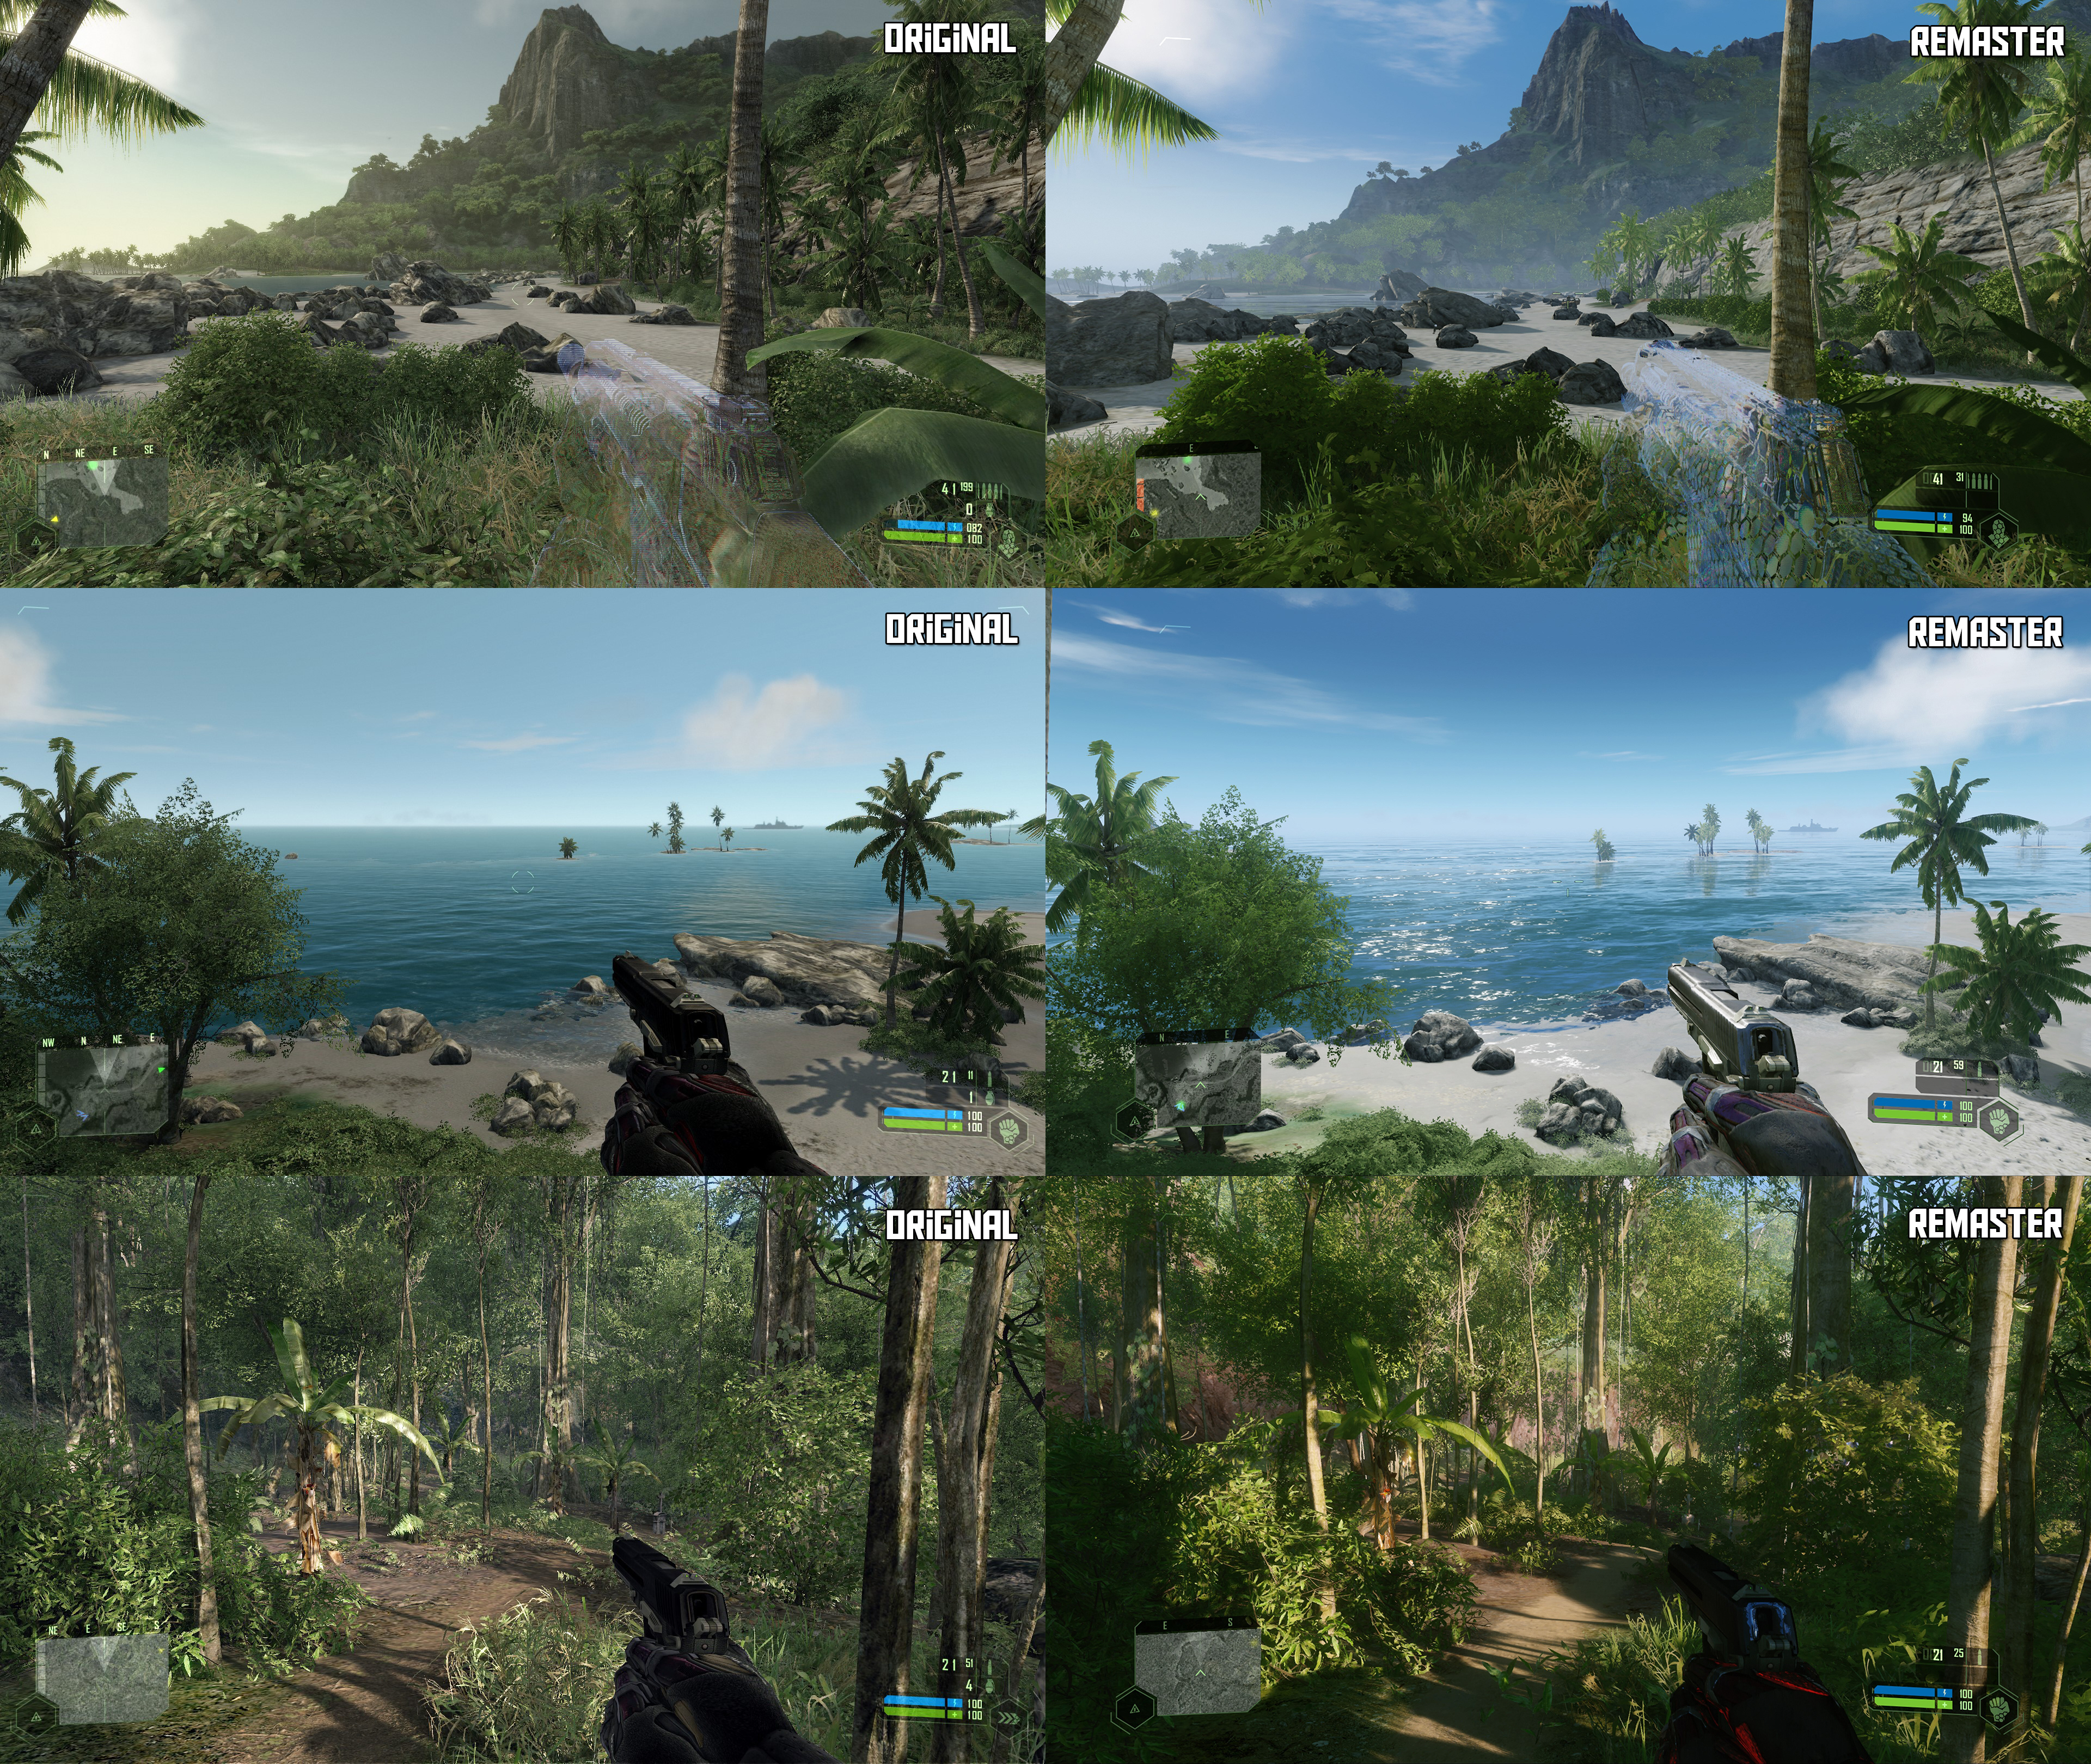 Comparan Crysis Remastered con su original y el resultado no parece convencer 2